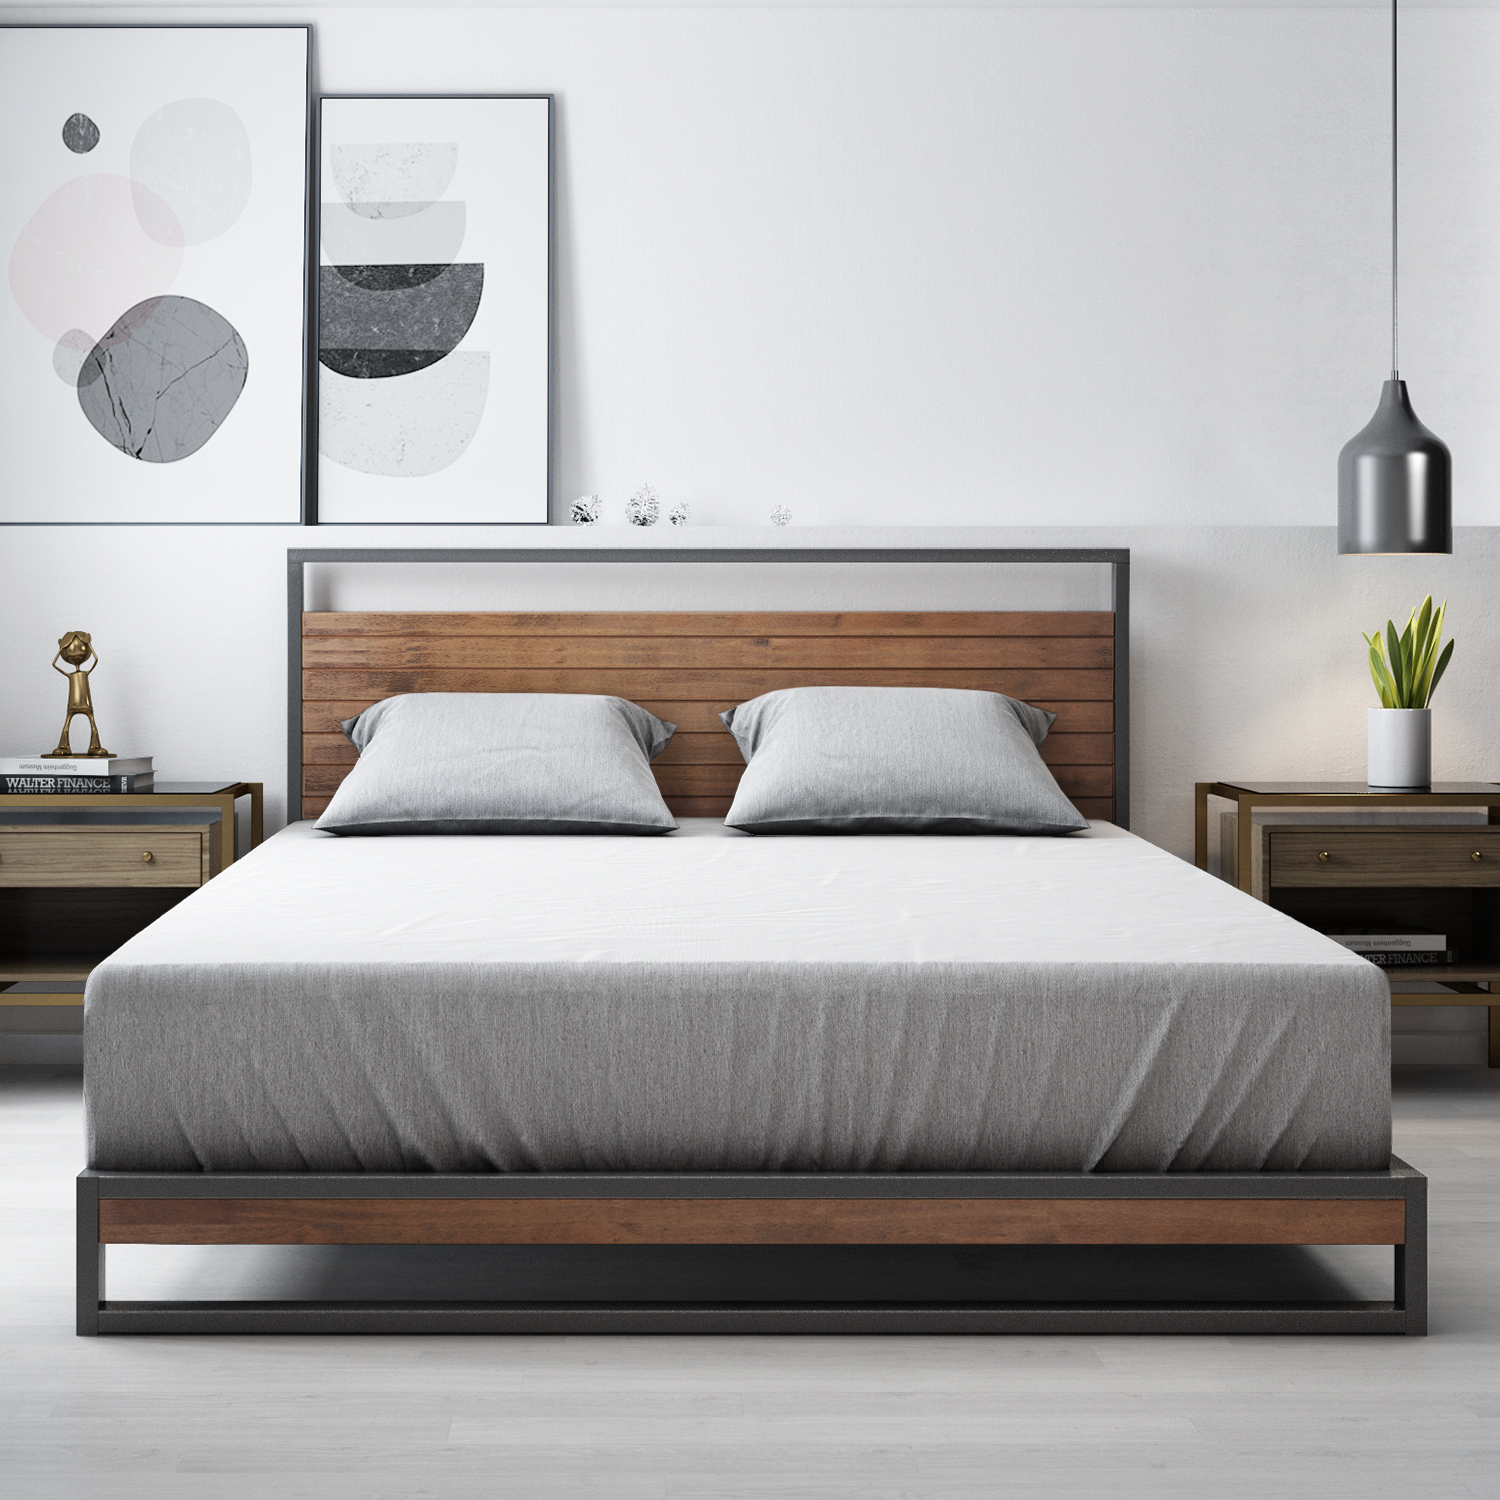 Zinus-Ironline-Metal-Wood-Bed-Frame-Queen-Single-Double-King-Base-Mattress-Pine